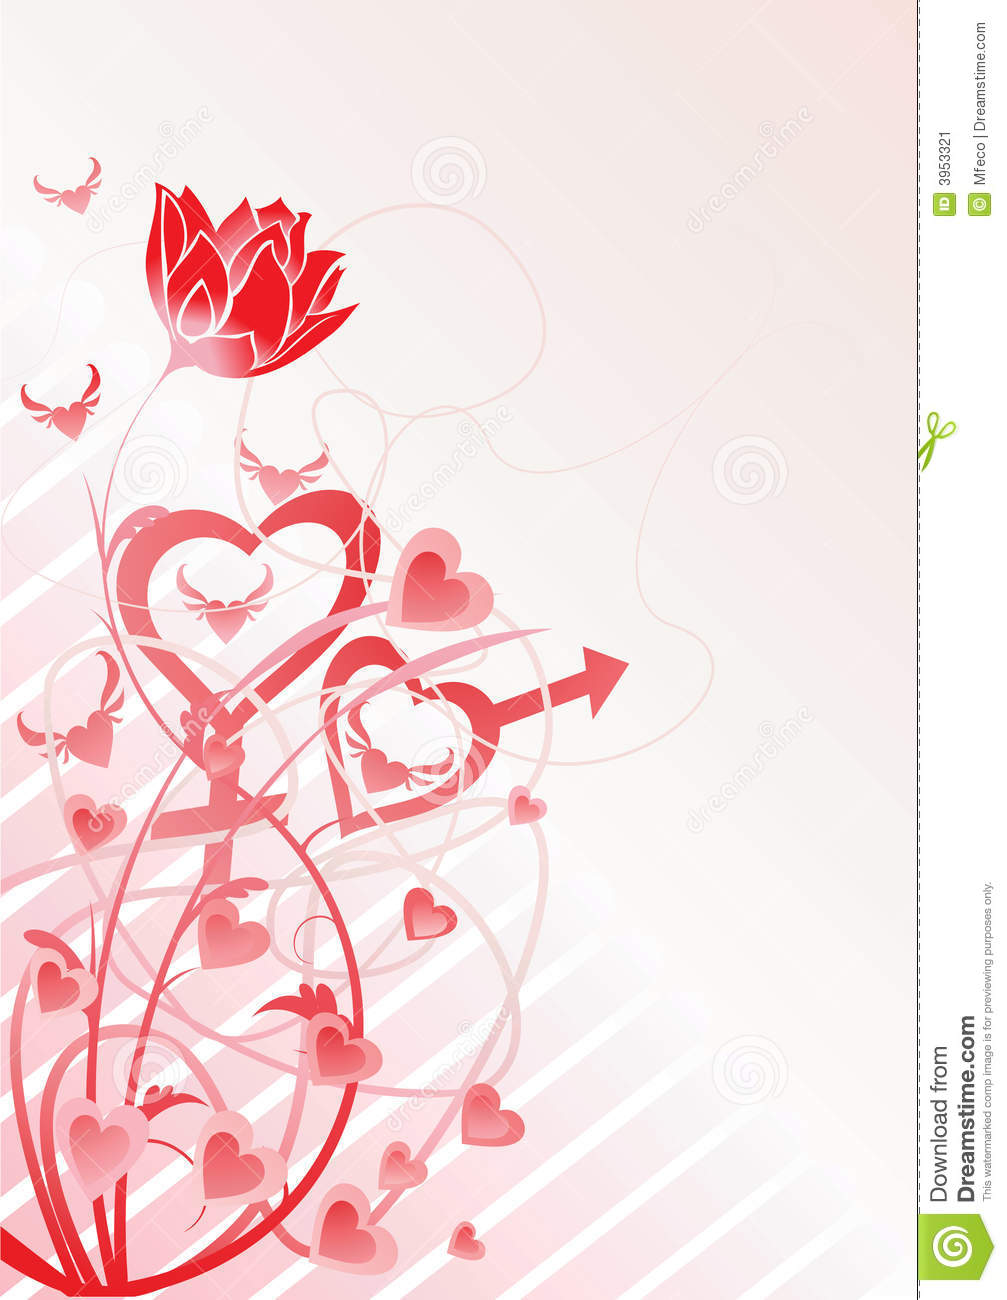 Love theme vector stock image image 3953321 for Love theme images